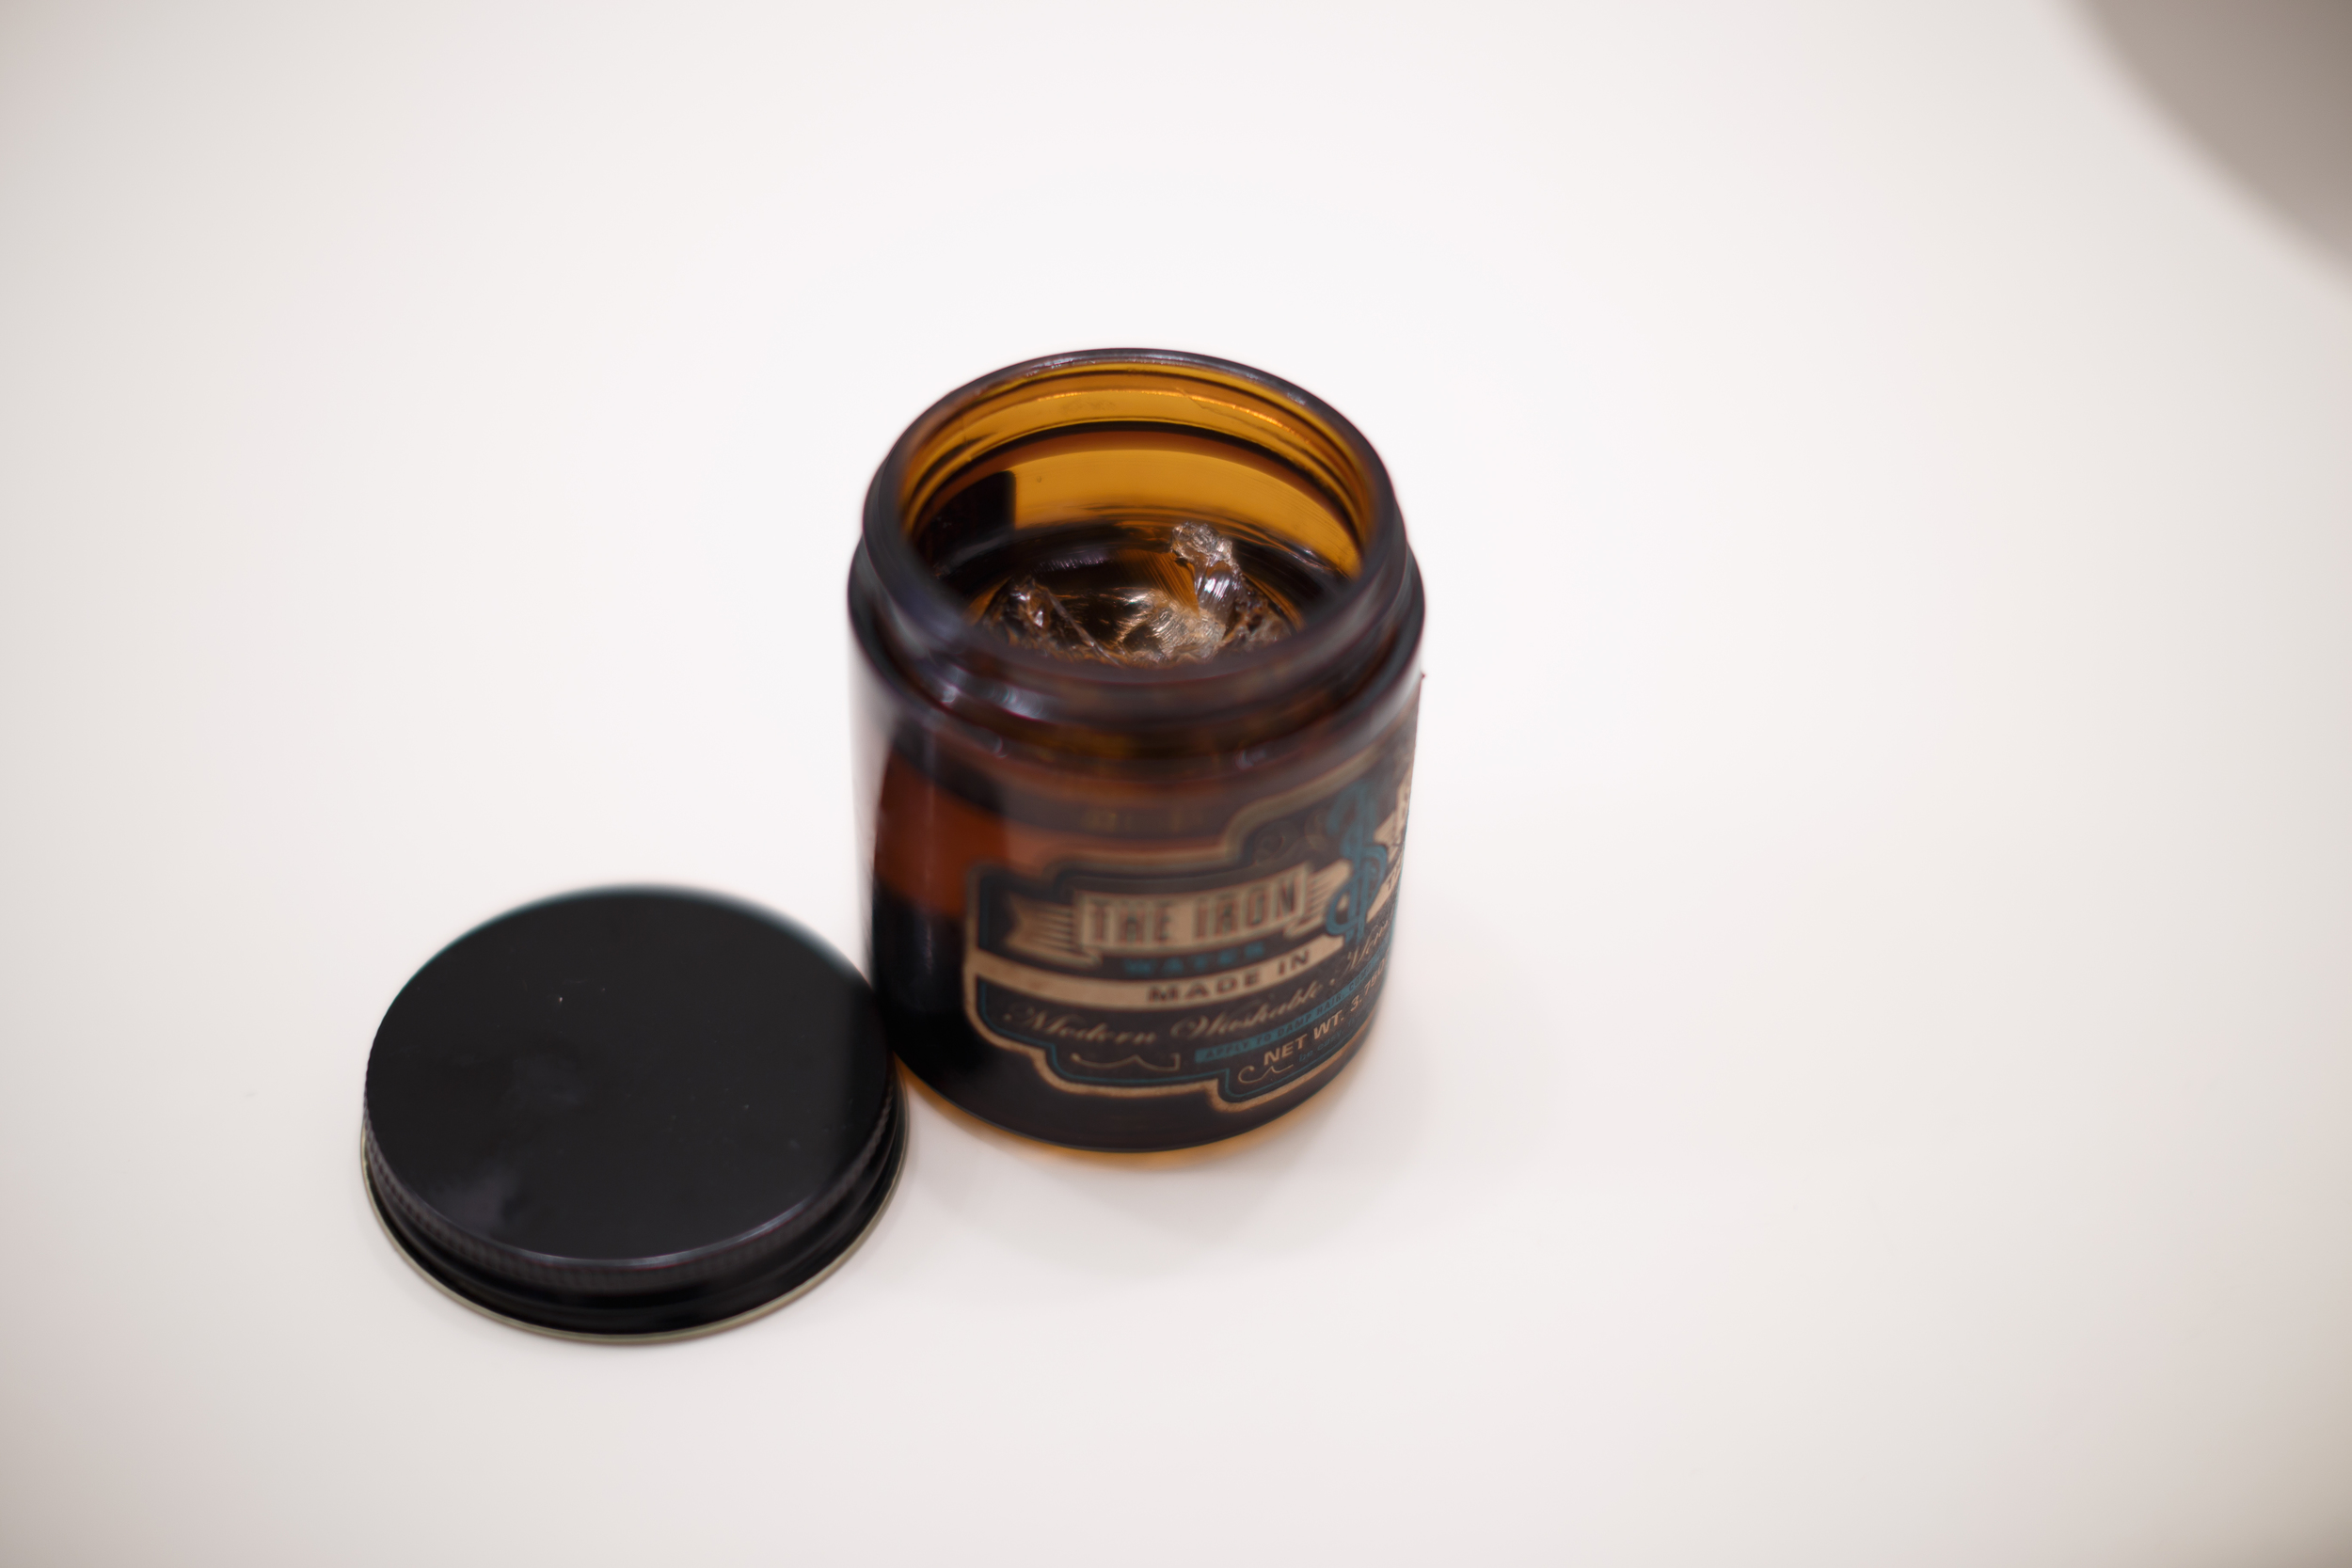 ThePomp Pomp Pomade Pompadour The Iron Society Water Soluble New York Jar Opened